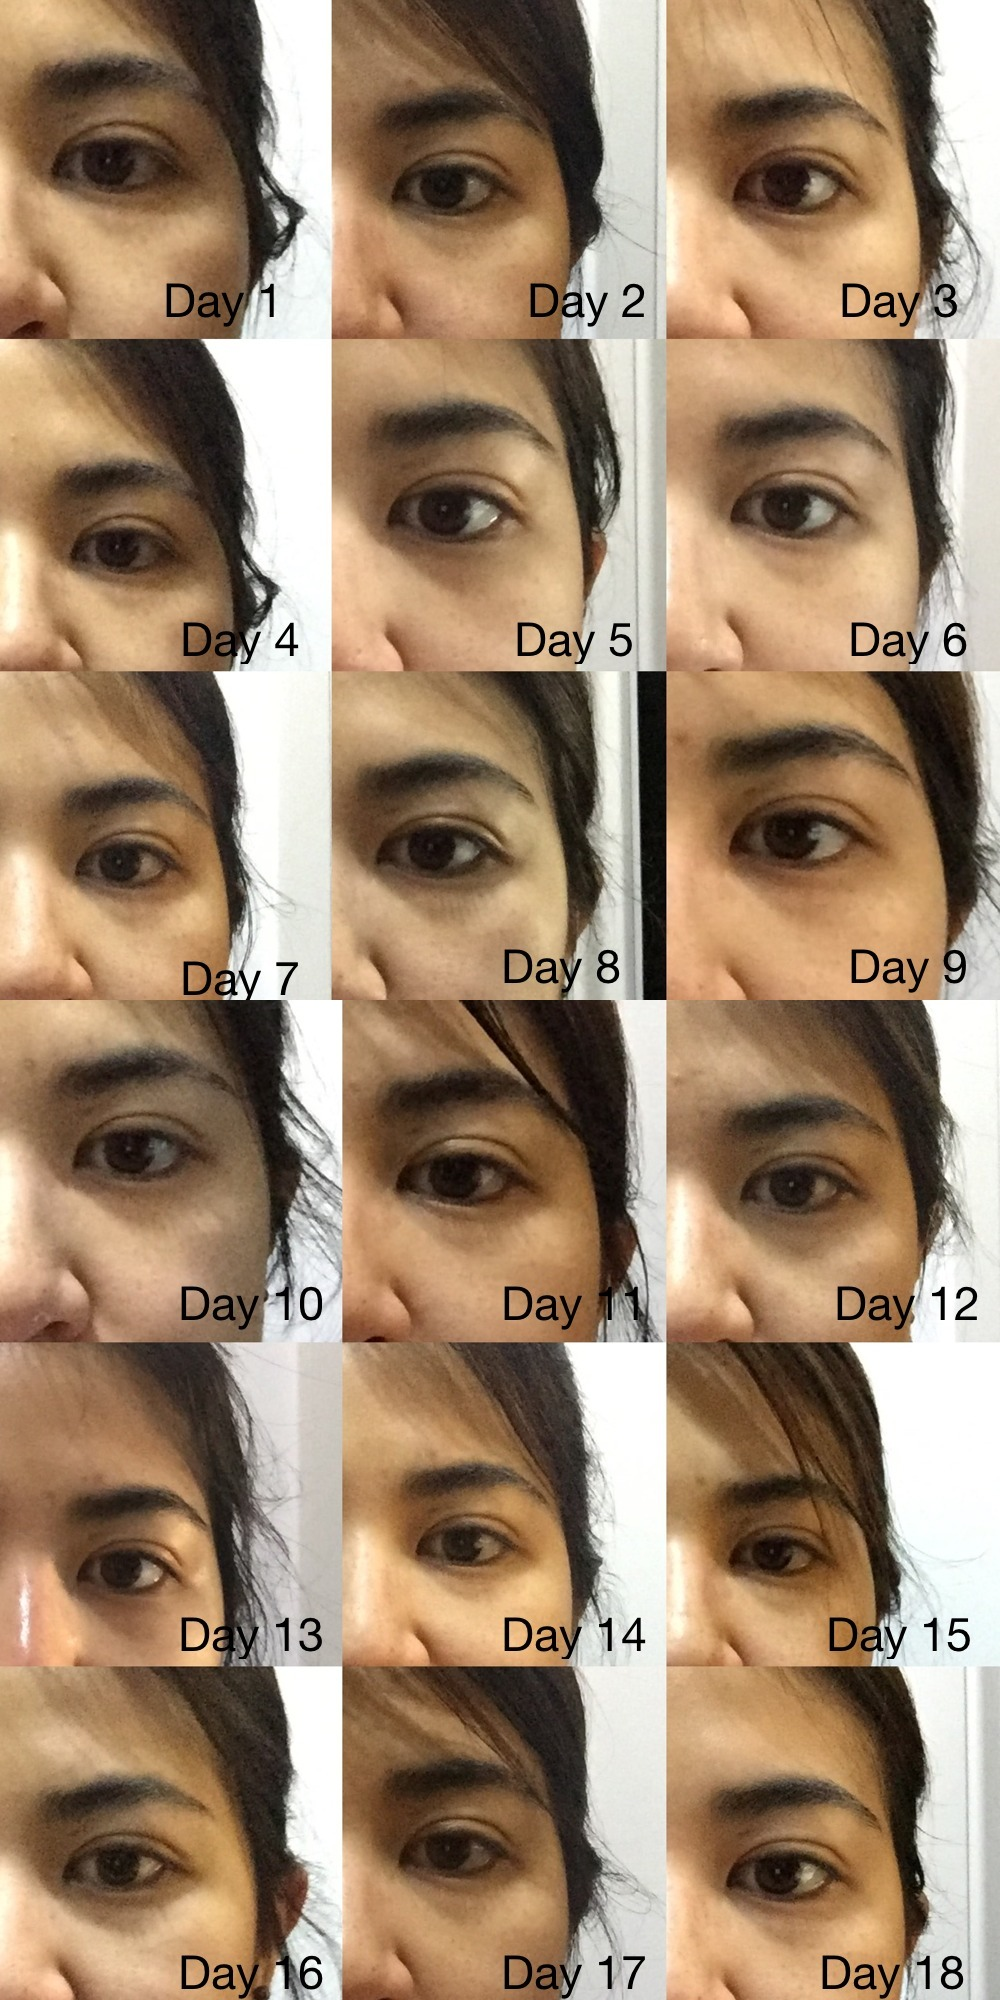 Eyecream Test from Day 1 - 18